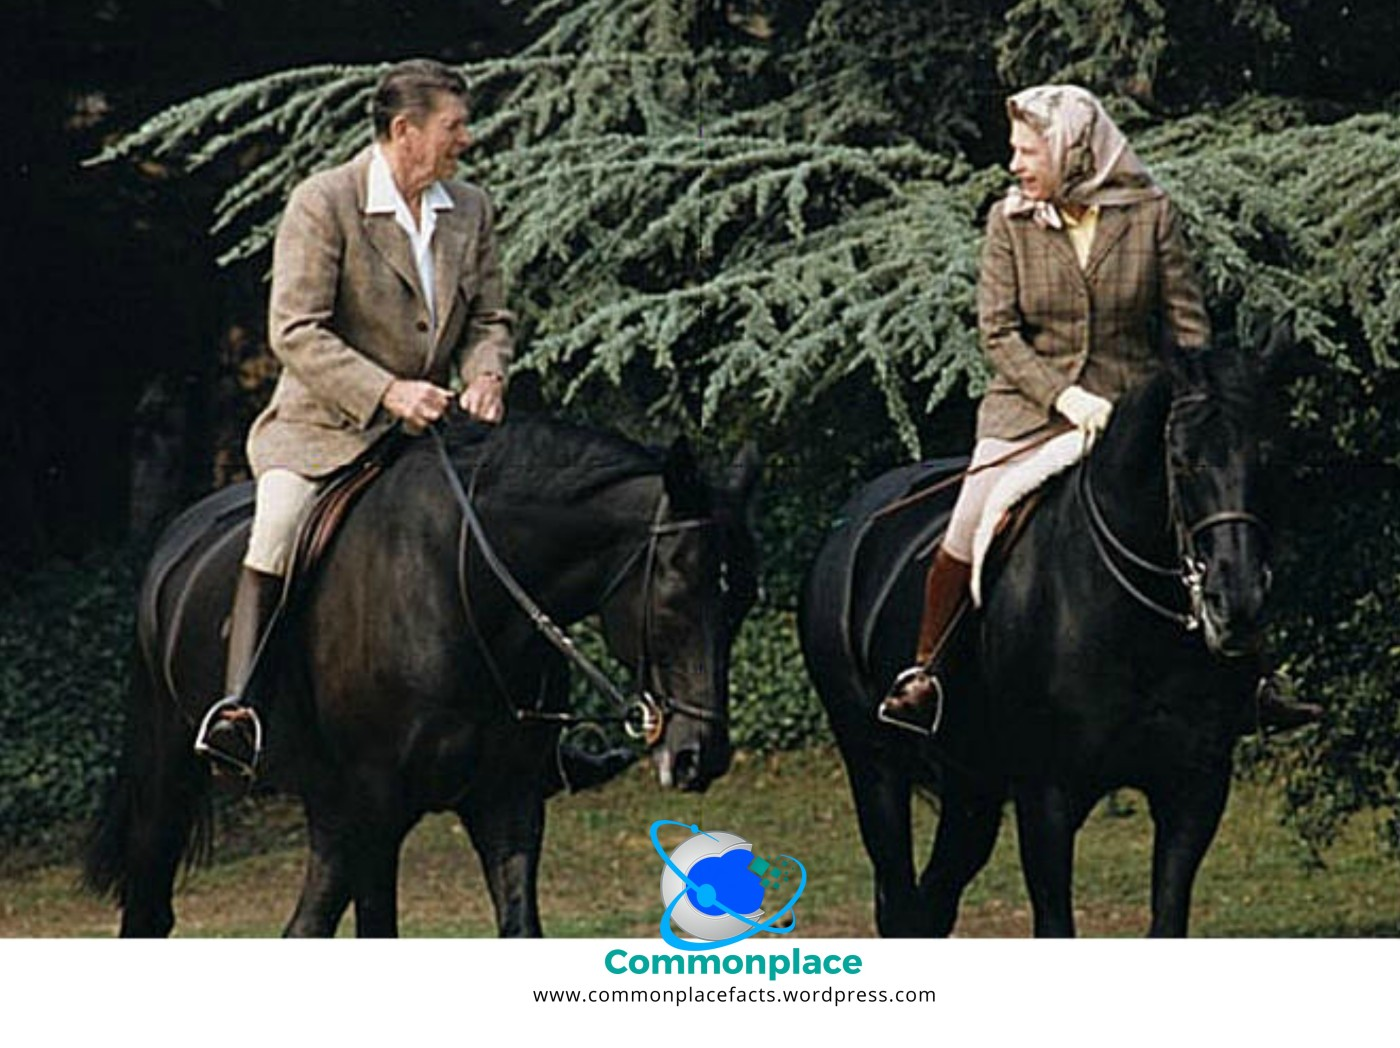 #reagan #ronaldreagan #queen #queenelizabeth #horses #horseback #humor #presidents #royalty